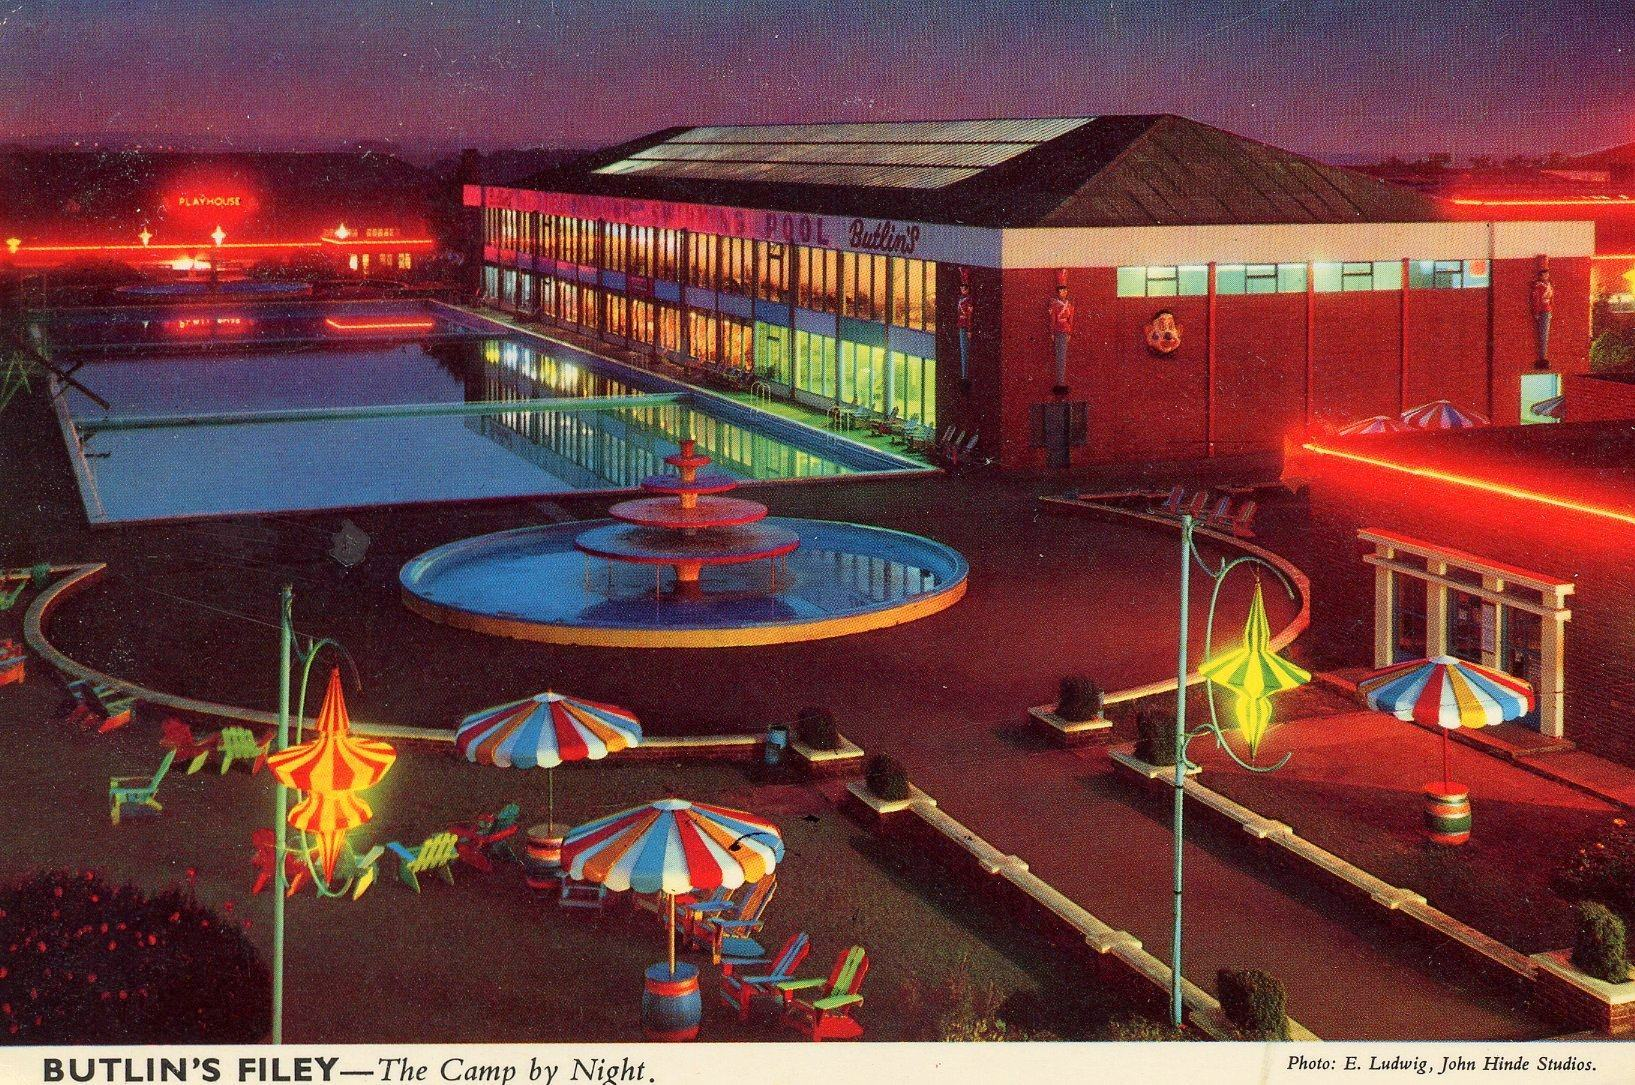 Butlins Filey - Night View of Pool (postcard, late 1960s)